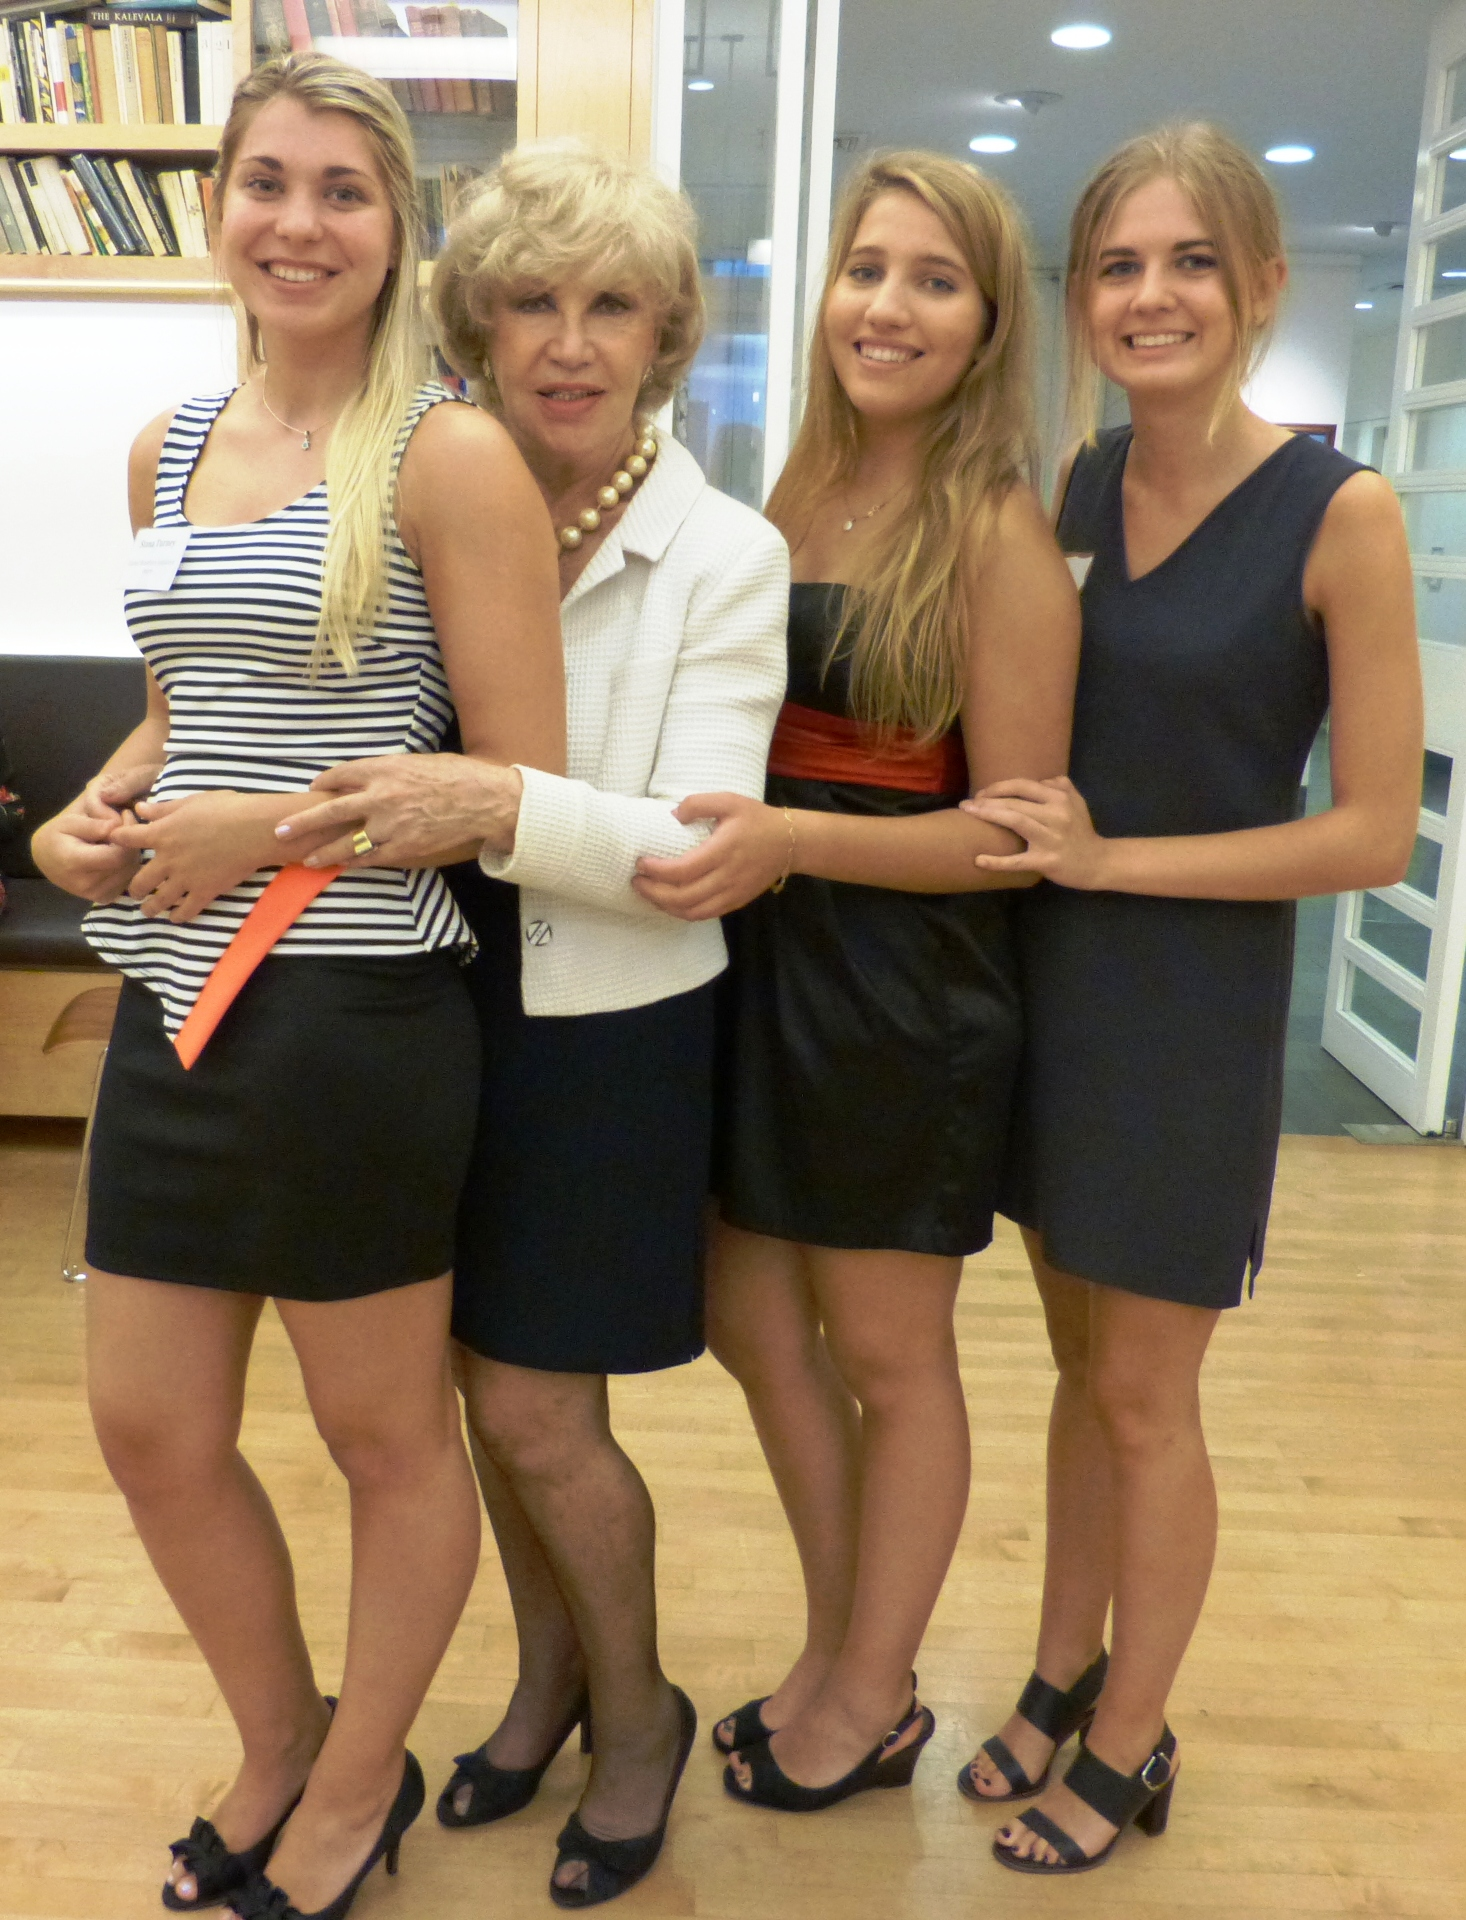 From left to right, intern Stana Turney, her mother Mrs. Turney, and her two friends.